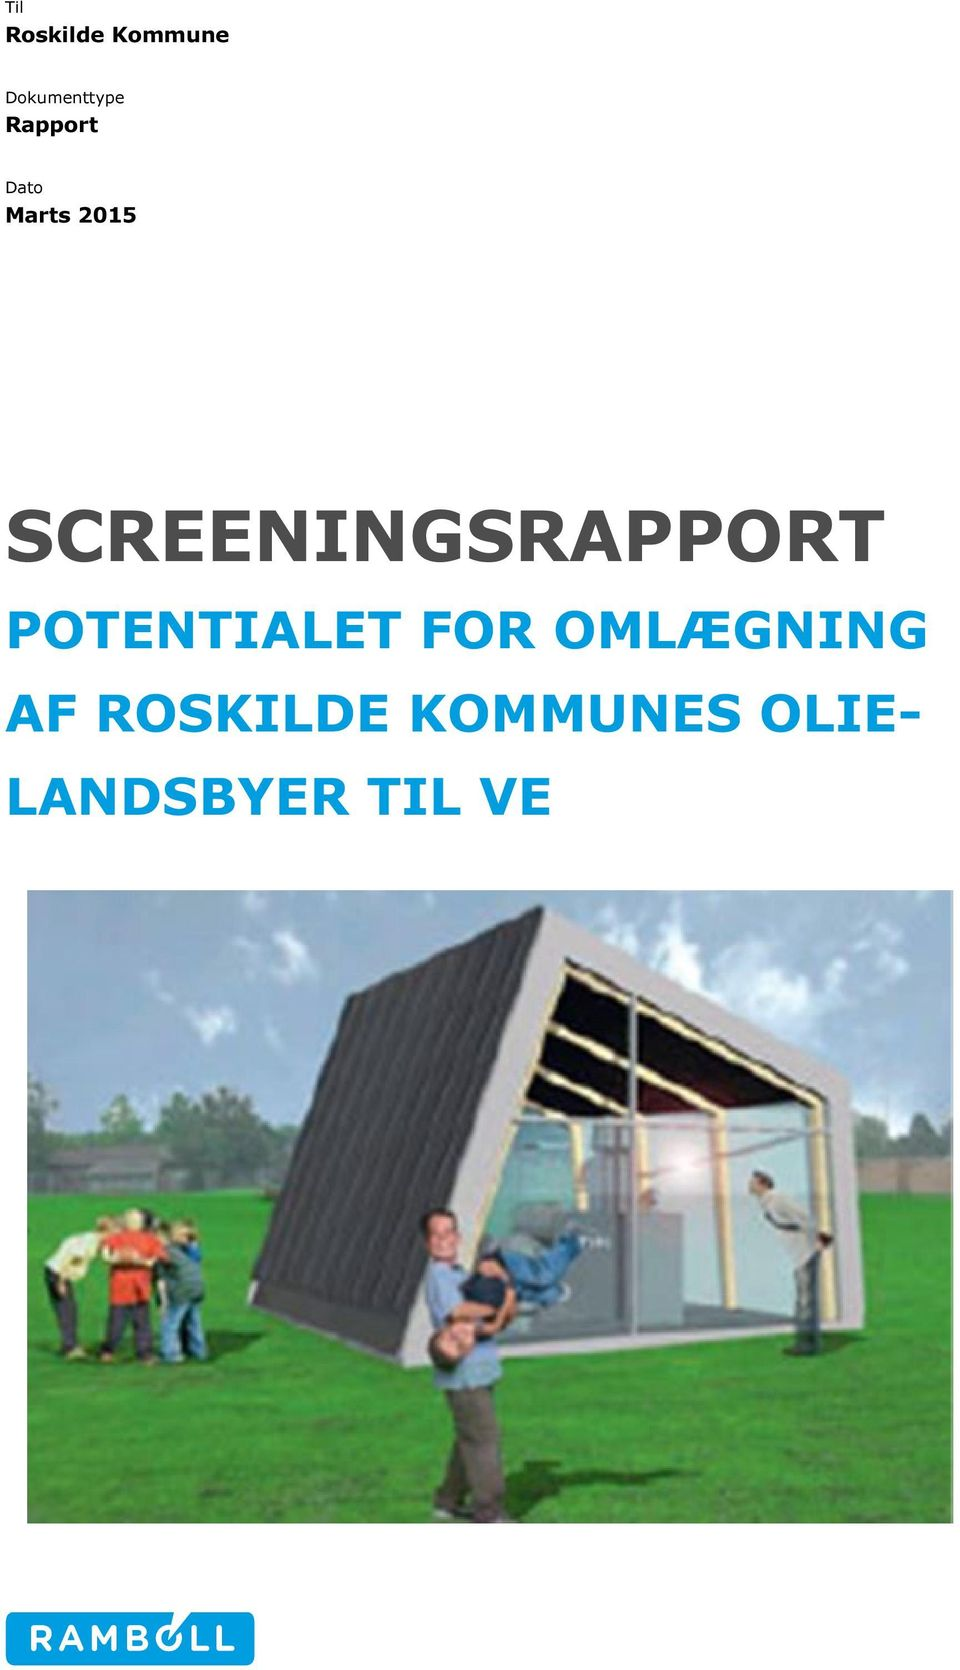 SCREENINGSRAPPORT POTENTIALET FOR